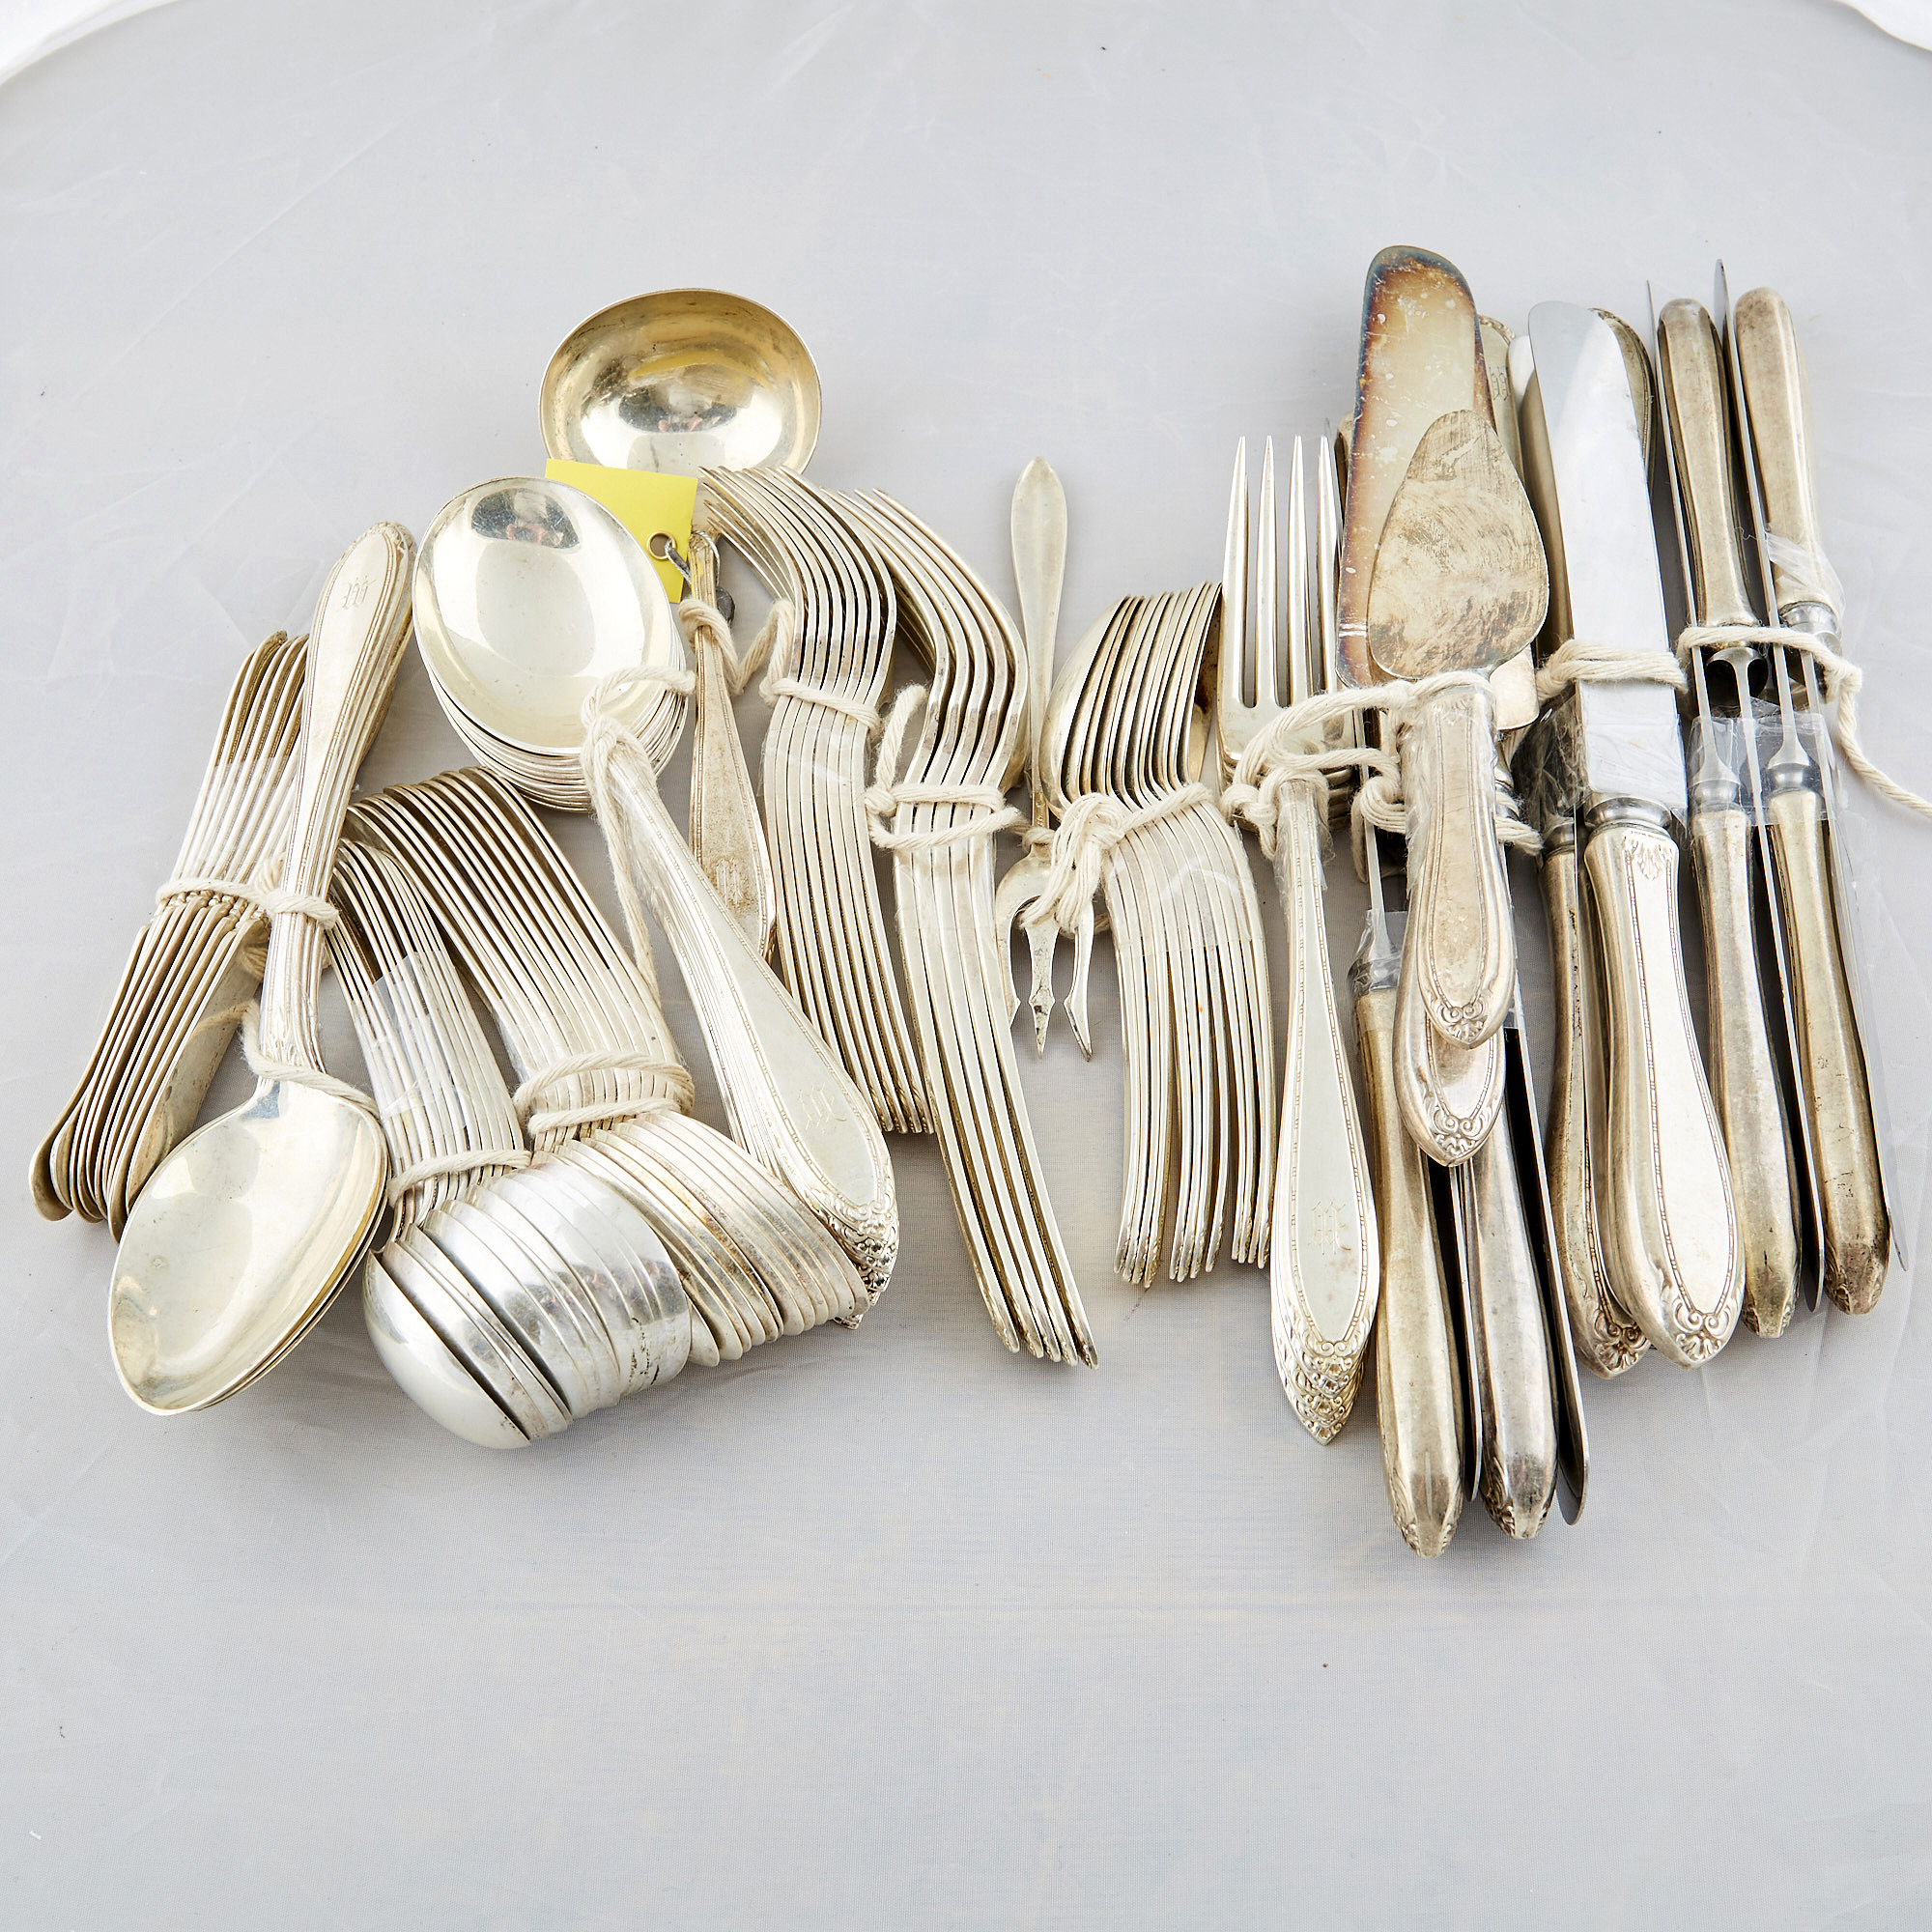 Lot image - 80 Pieces of Silverware, 82 ozs., 14 handles